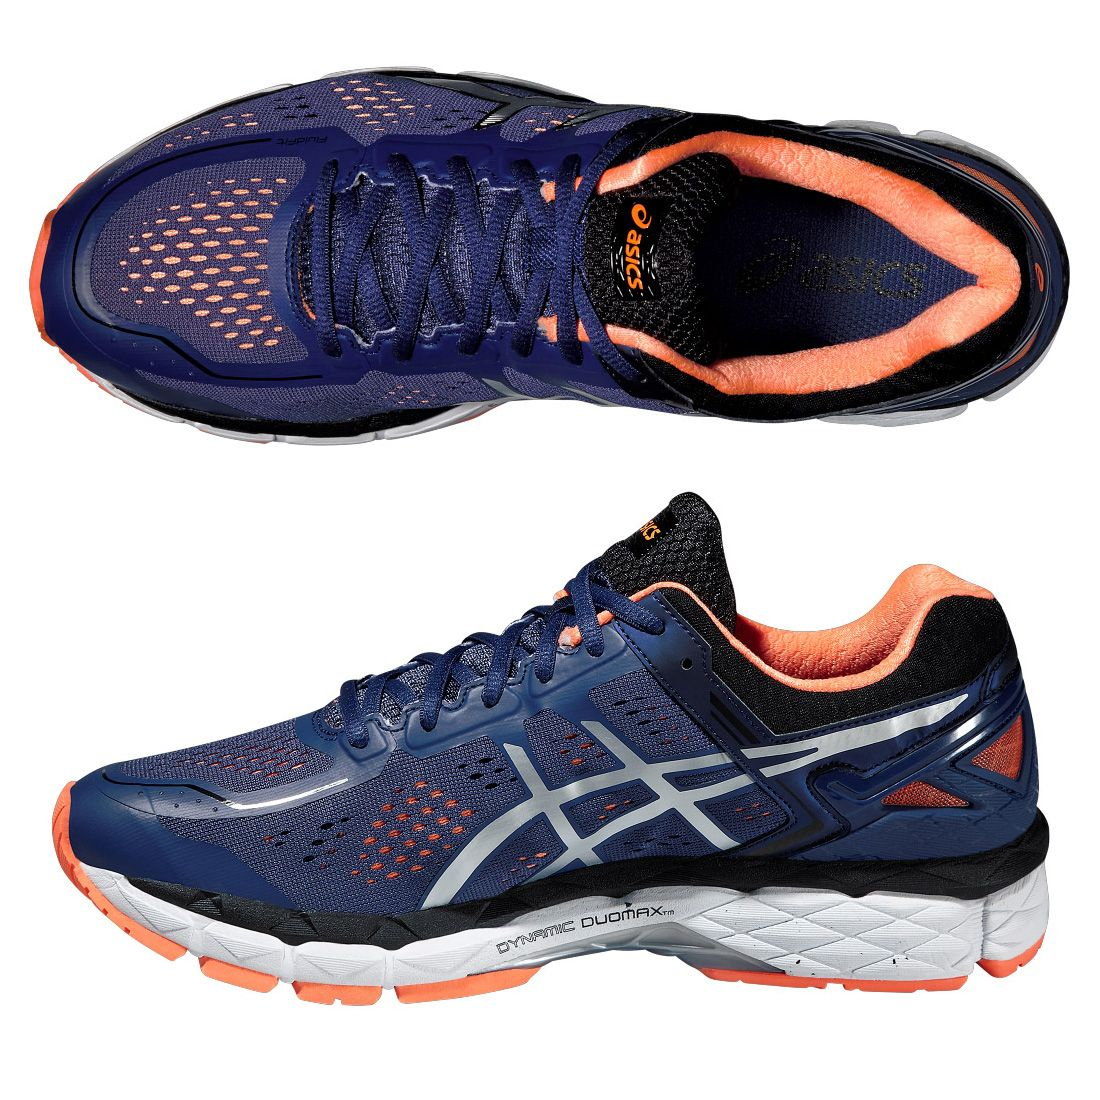 asics gel kayano 22 mens running shoes. Black Bedroom Furniture Sets. Home Design Ideas